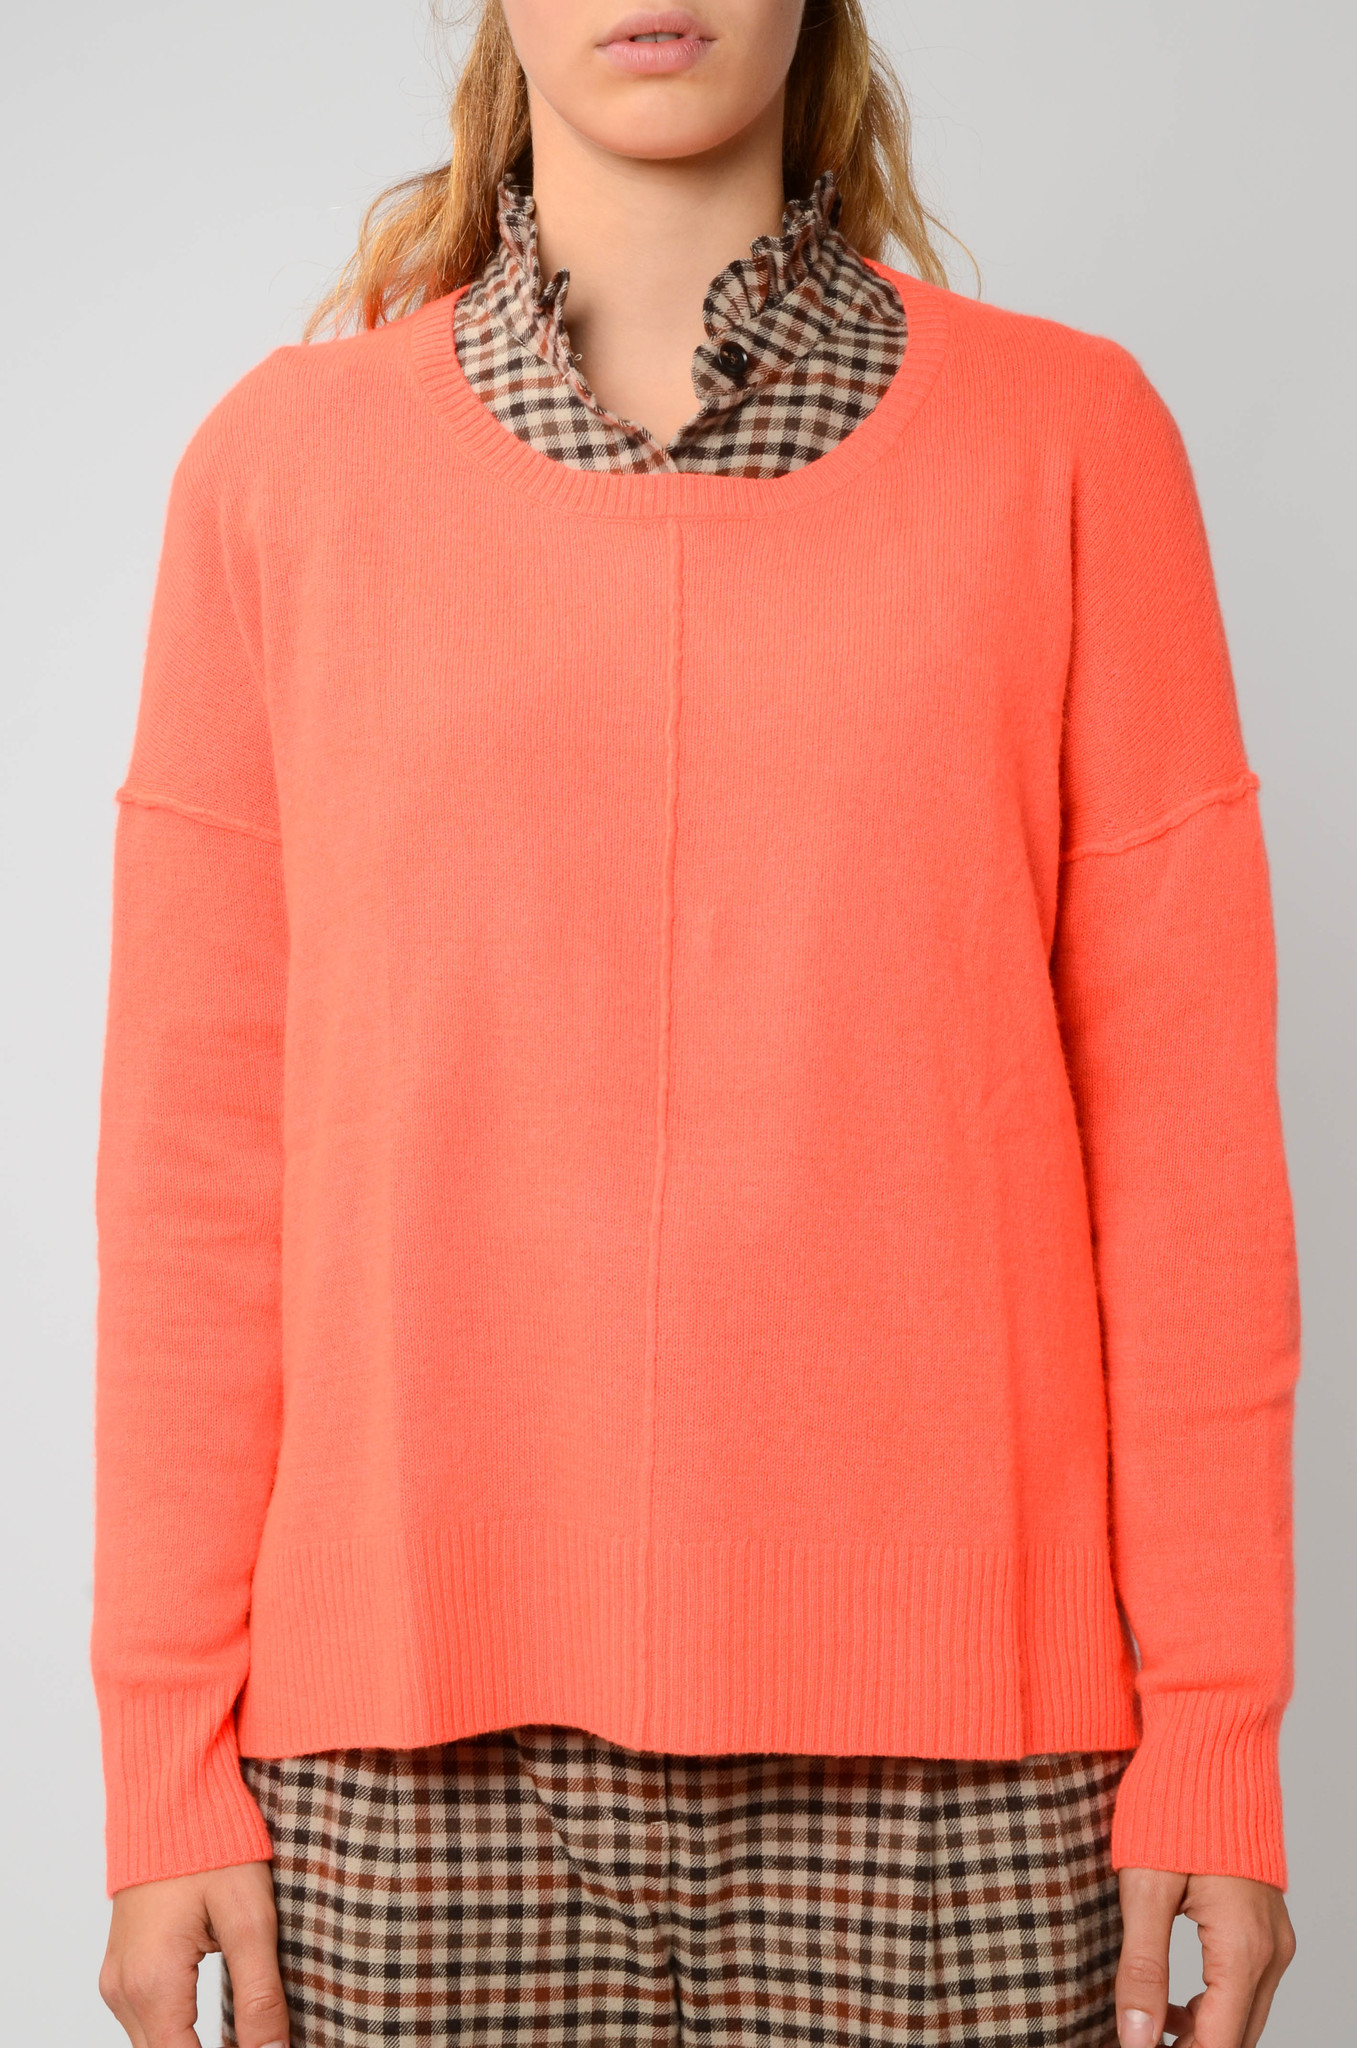 KENZA SWEATER IN NEON CORAL-1